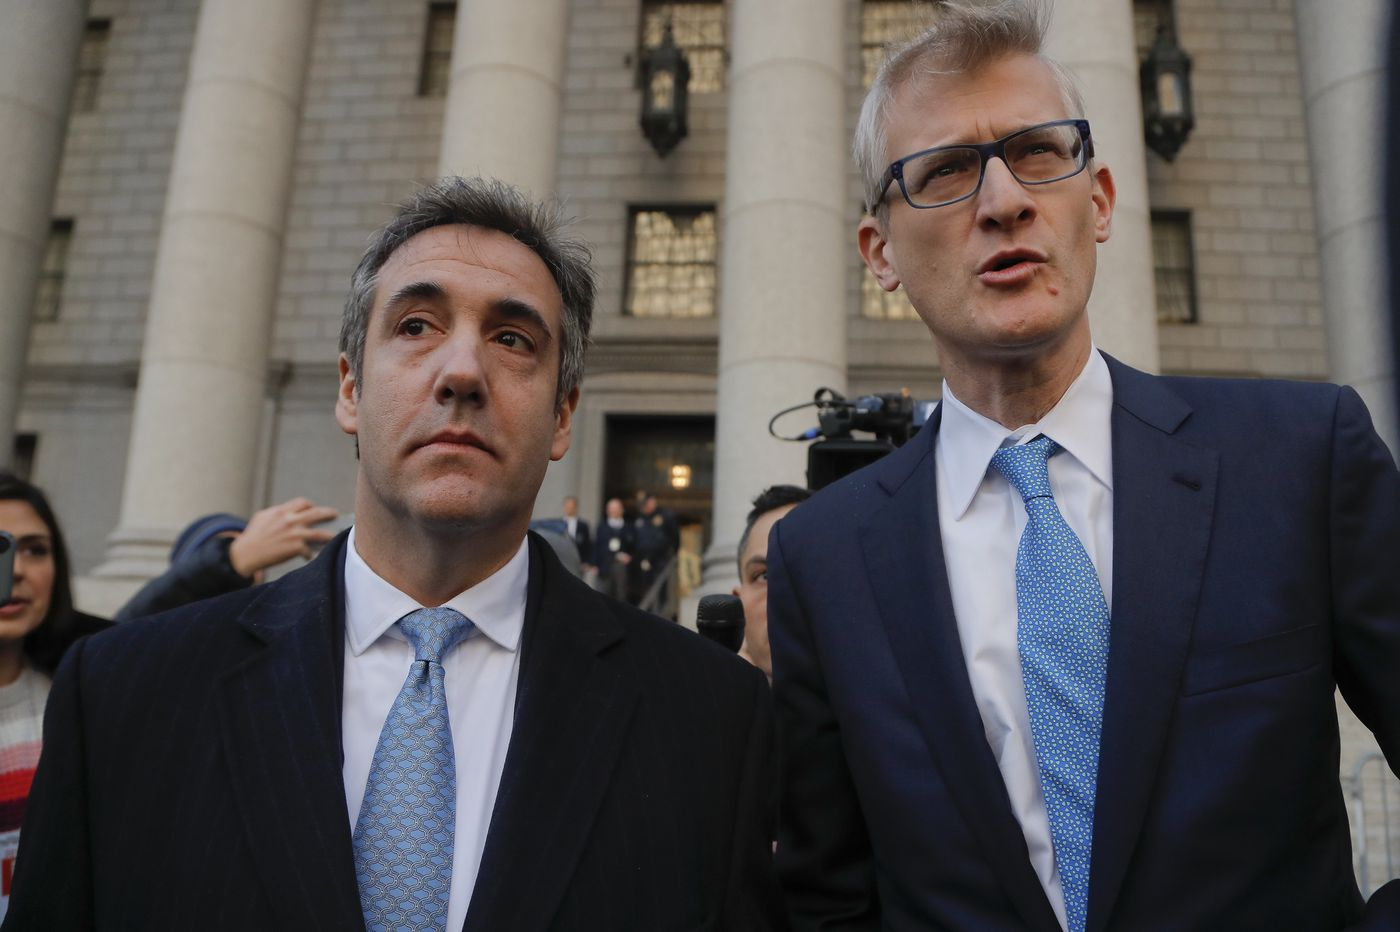 Former Trump lawyer Michael Cohen pleads guilty to lying to Congress